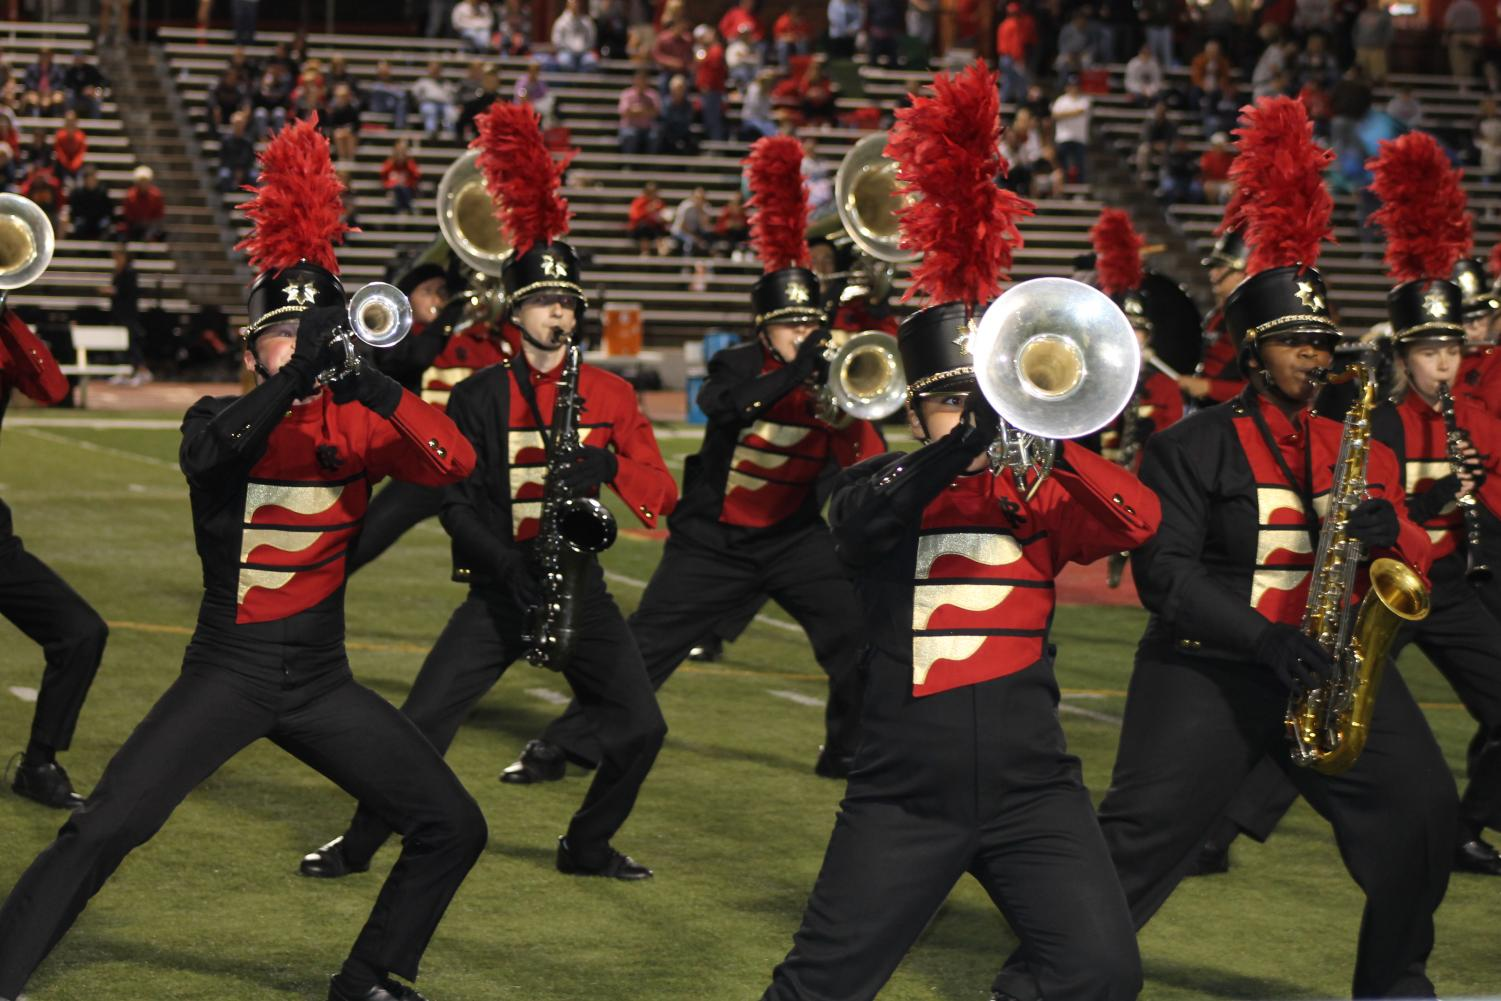 The Pride of Rock Island performs during halftime of the home football game.